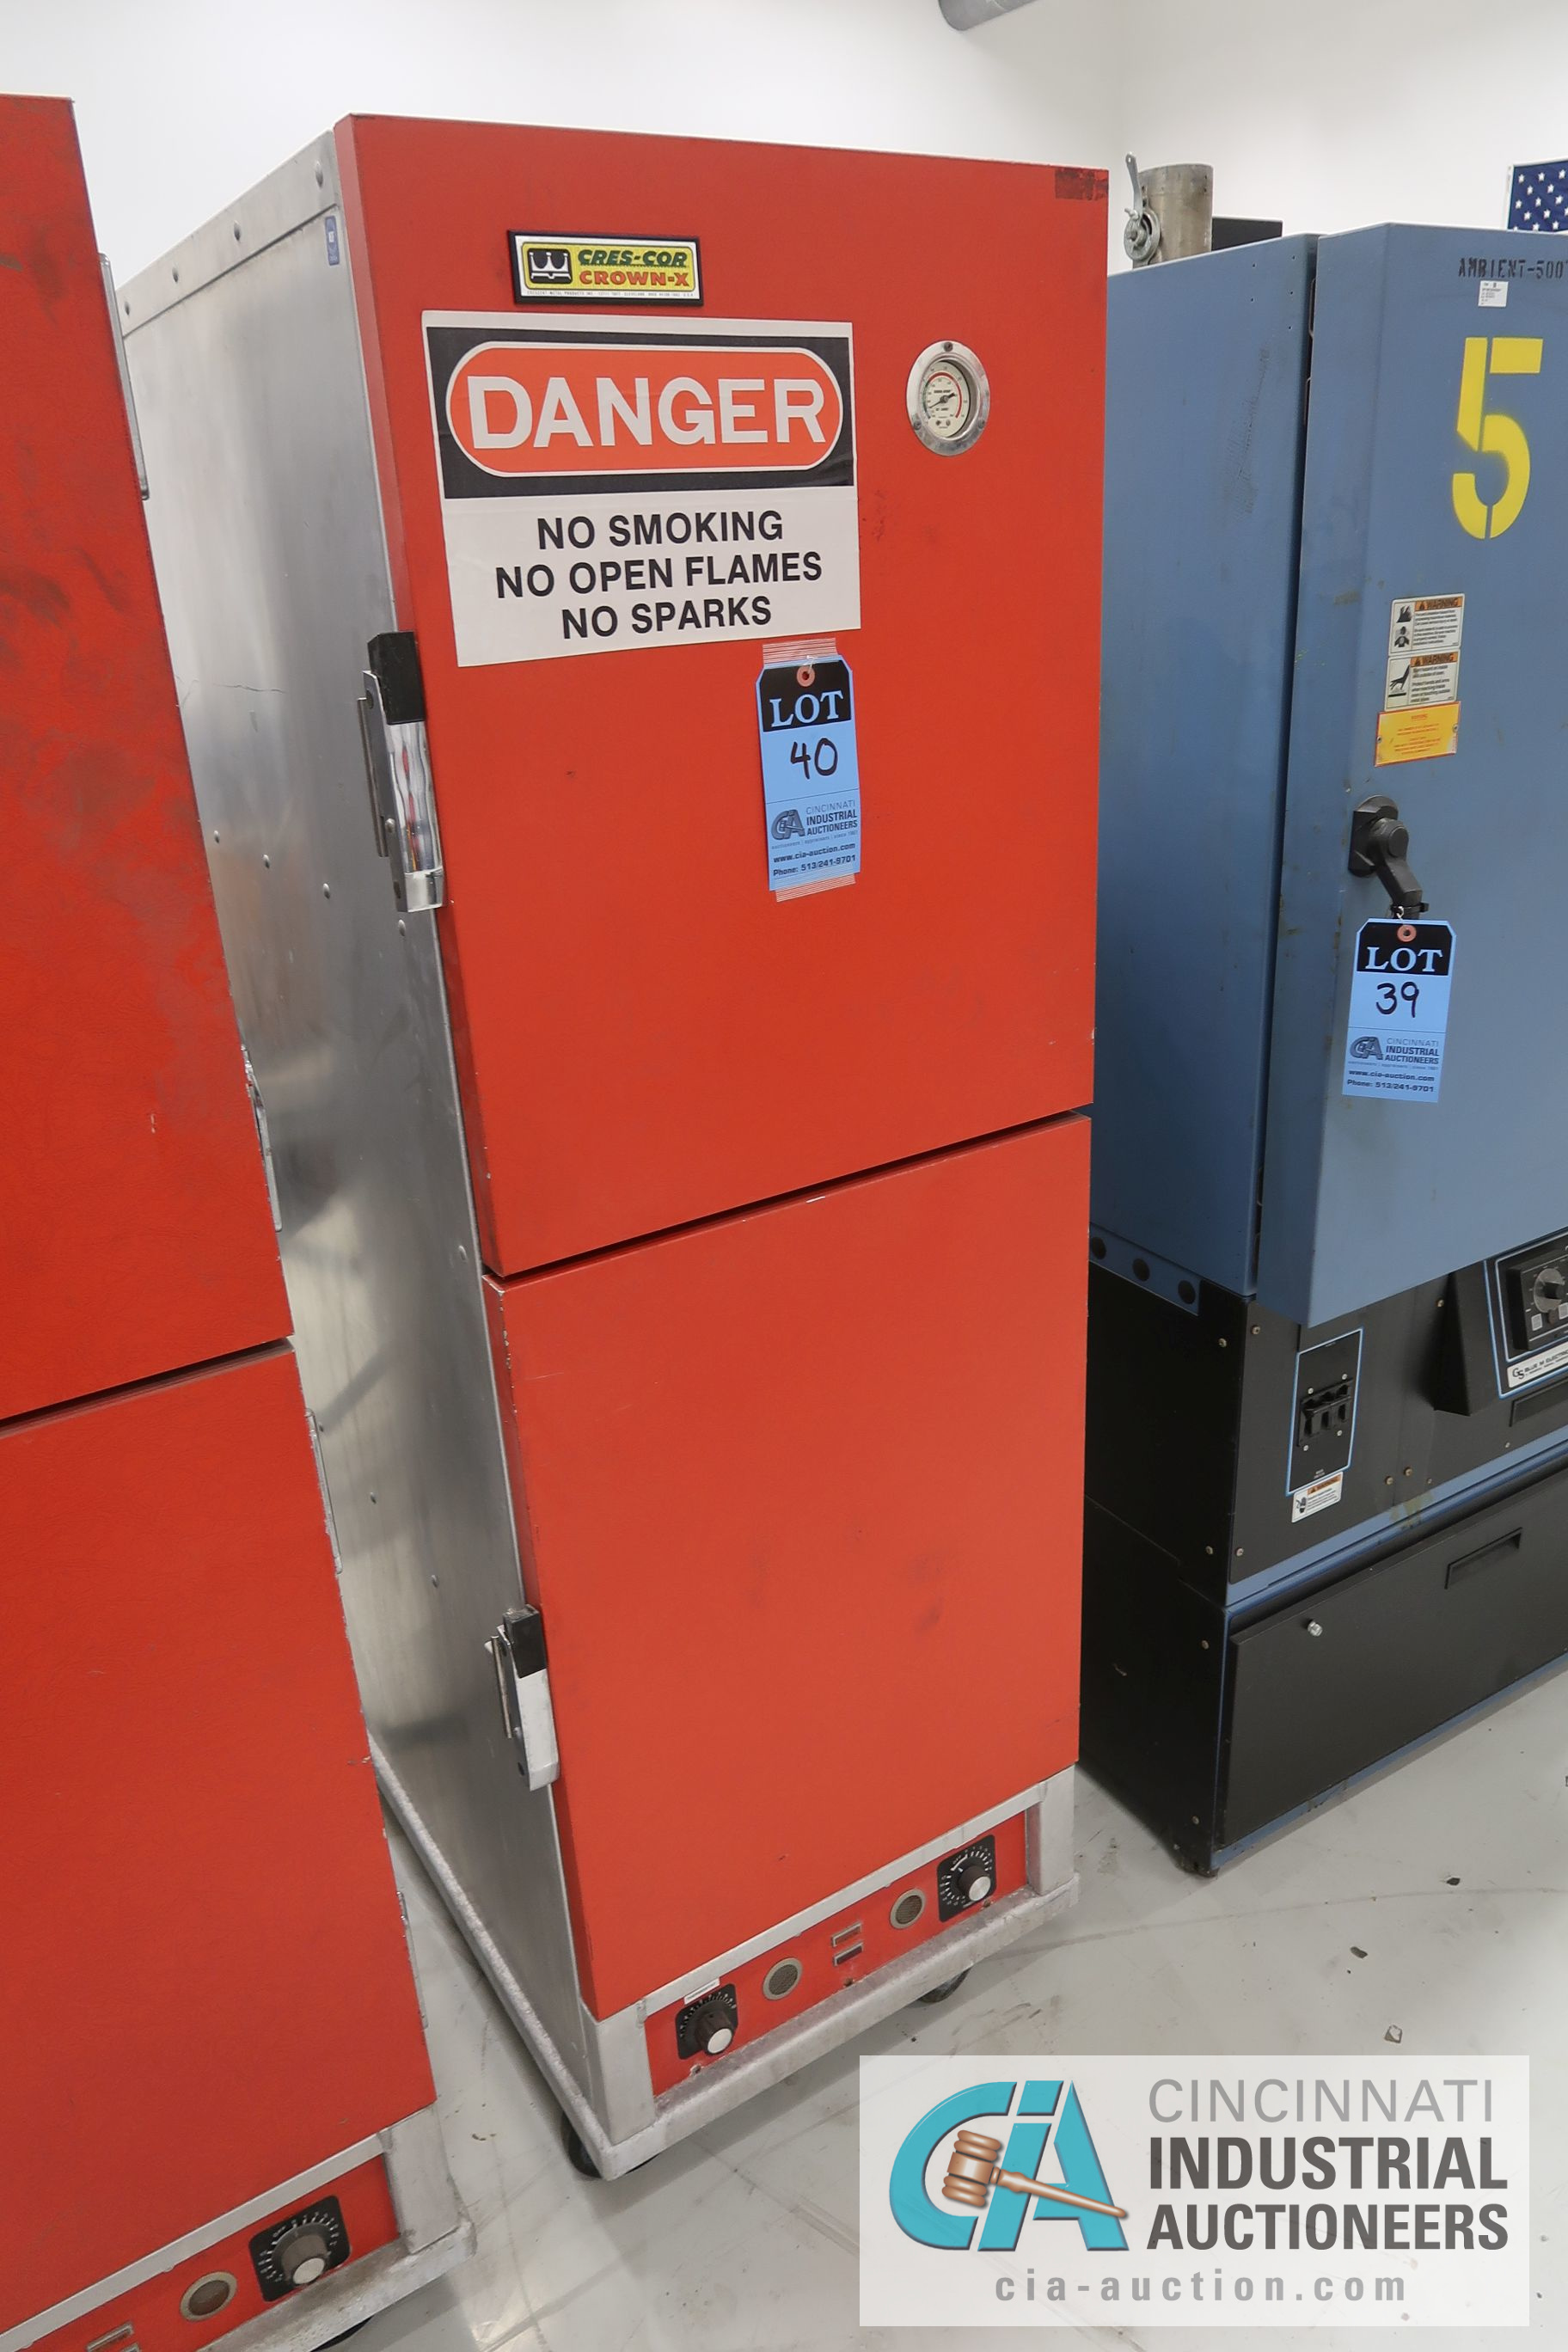 CRES-COR CROWN-X MODEL H-138-1834 TWO-DOOR ELECTRIC HOT CABINETS